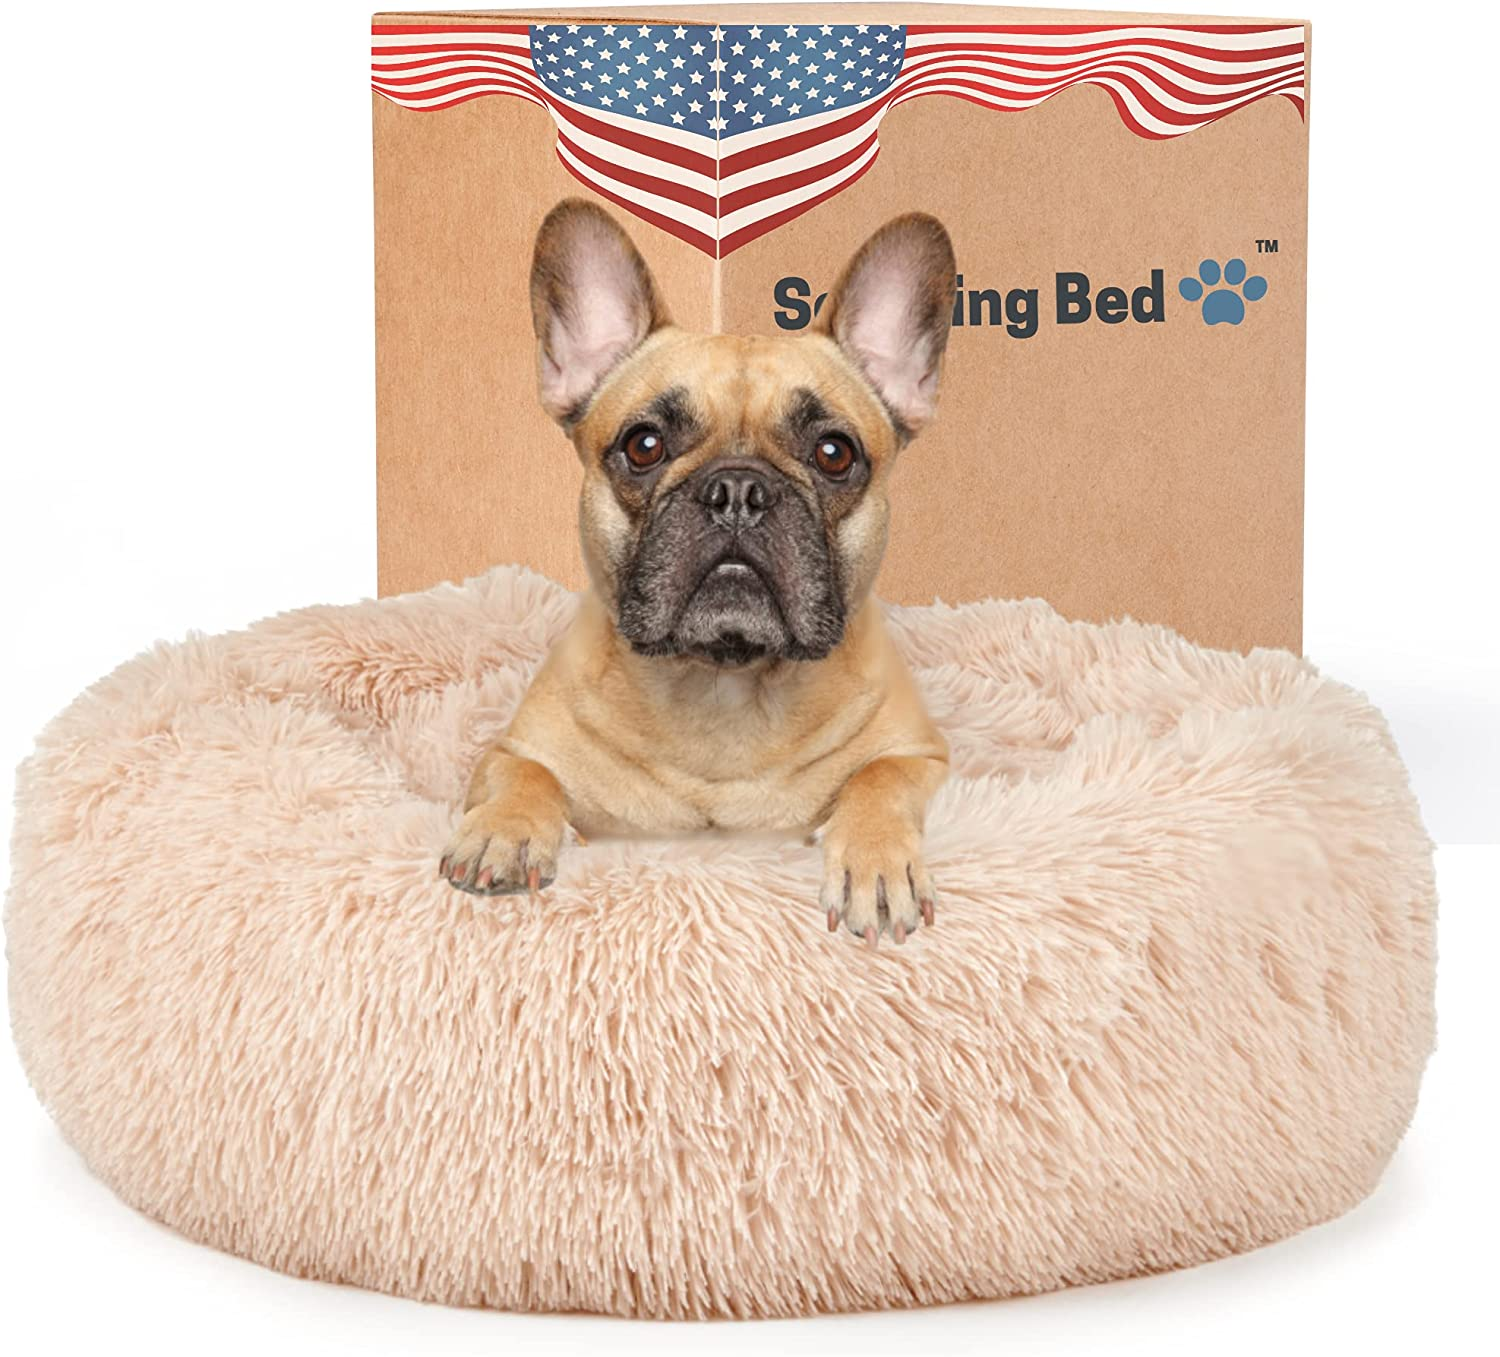 Calming Dog Bed for Large-scale Brand Cheap Sale Venue sale Medium Dogs Ort The Anxiety - Round Original